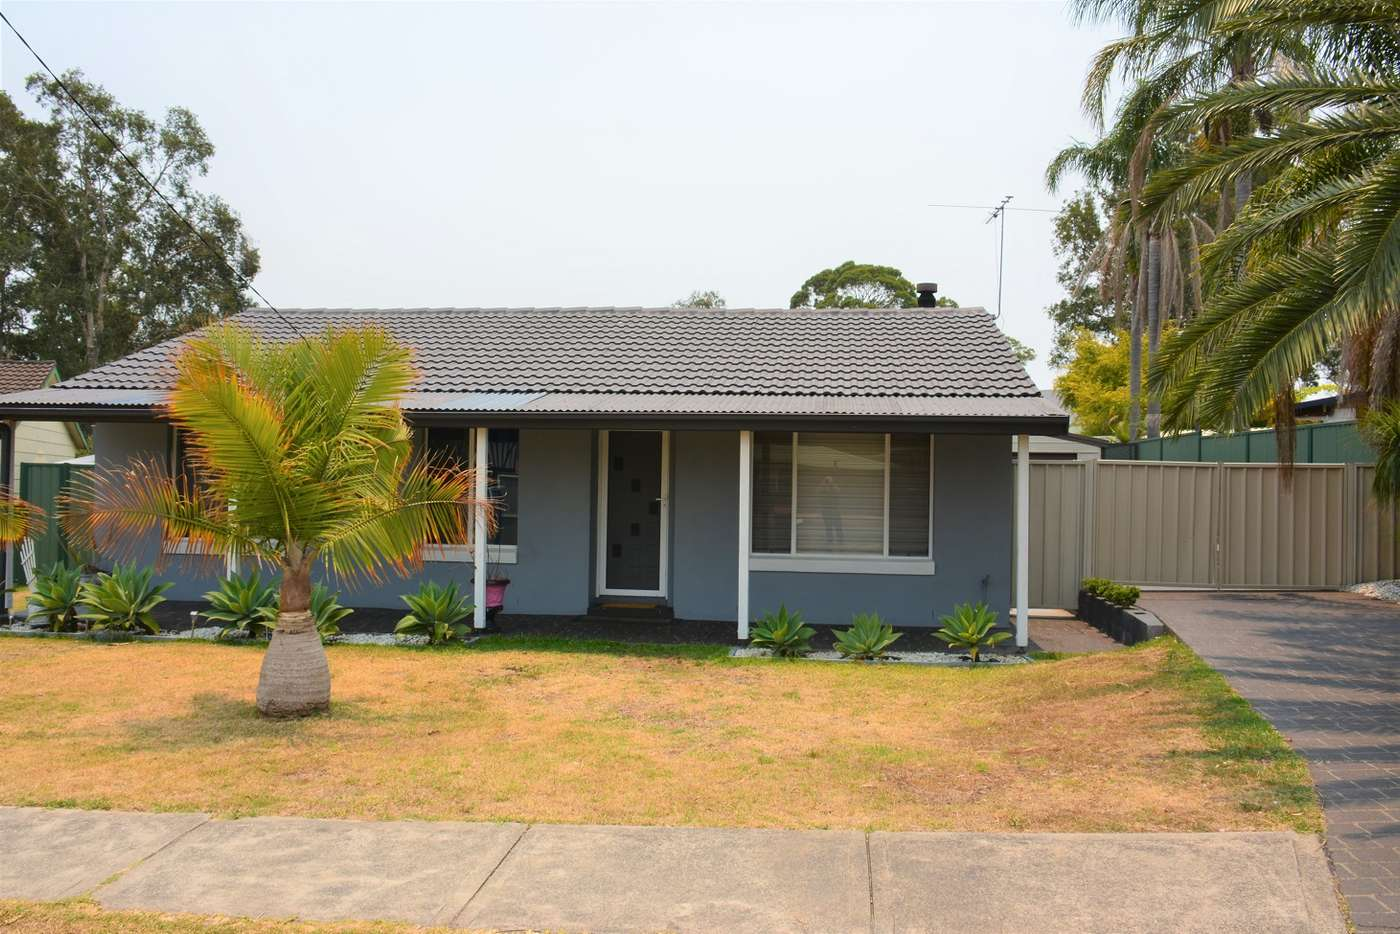 Main view of Homely house listing, 33 Cams Blvd, Summerland Point NSW 2259